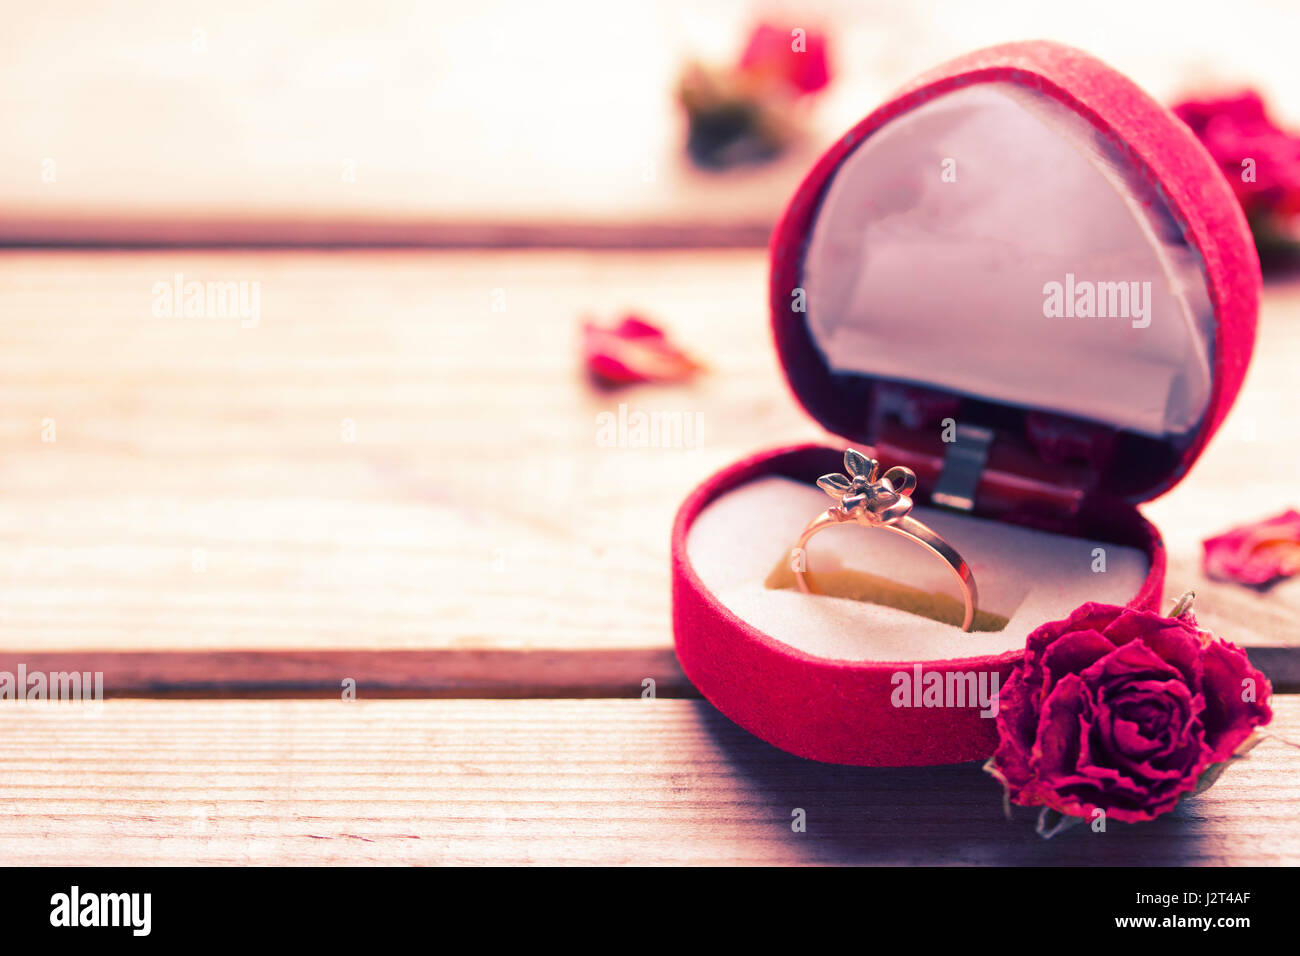 Red Rose Ring Box Stock Photos & Red Rose Ring Box Stock Images - Alamy